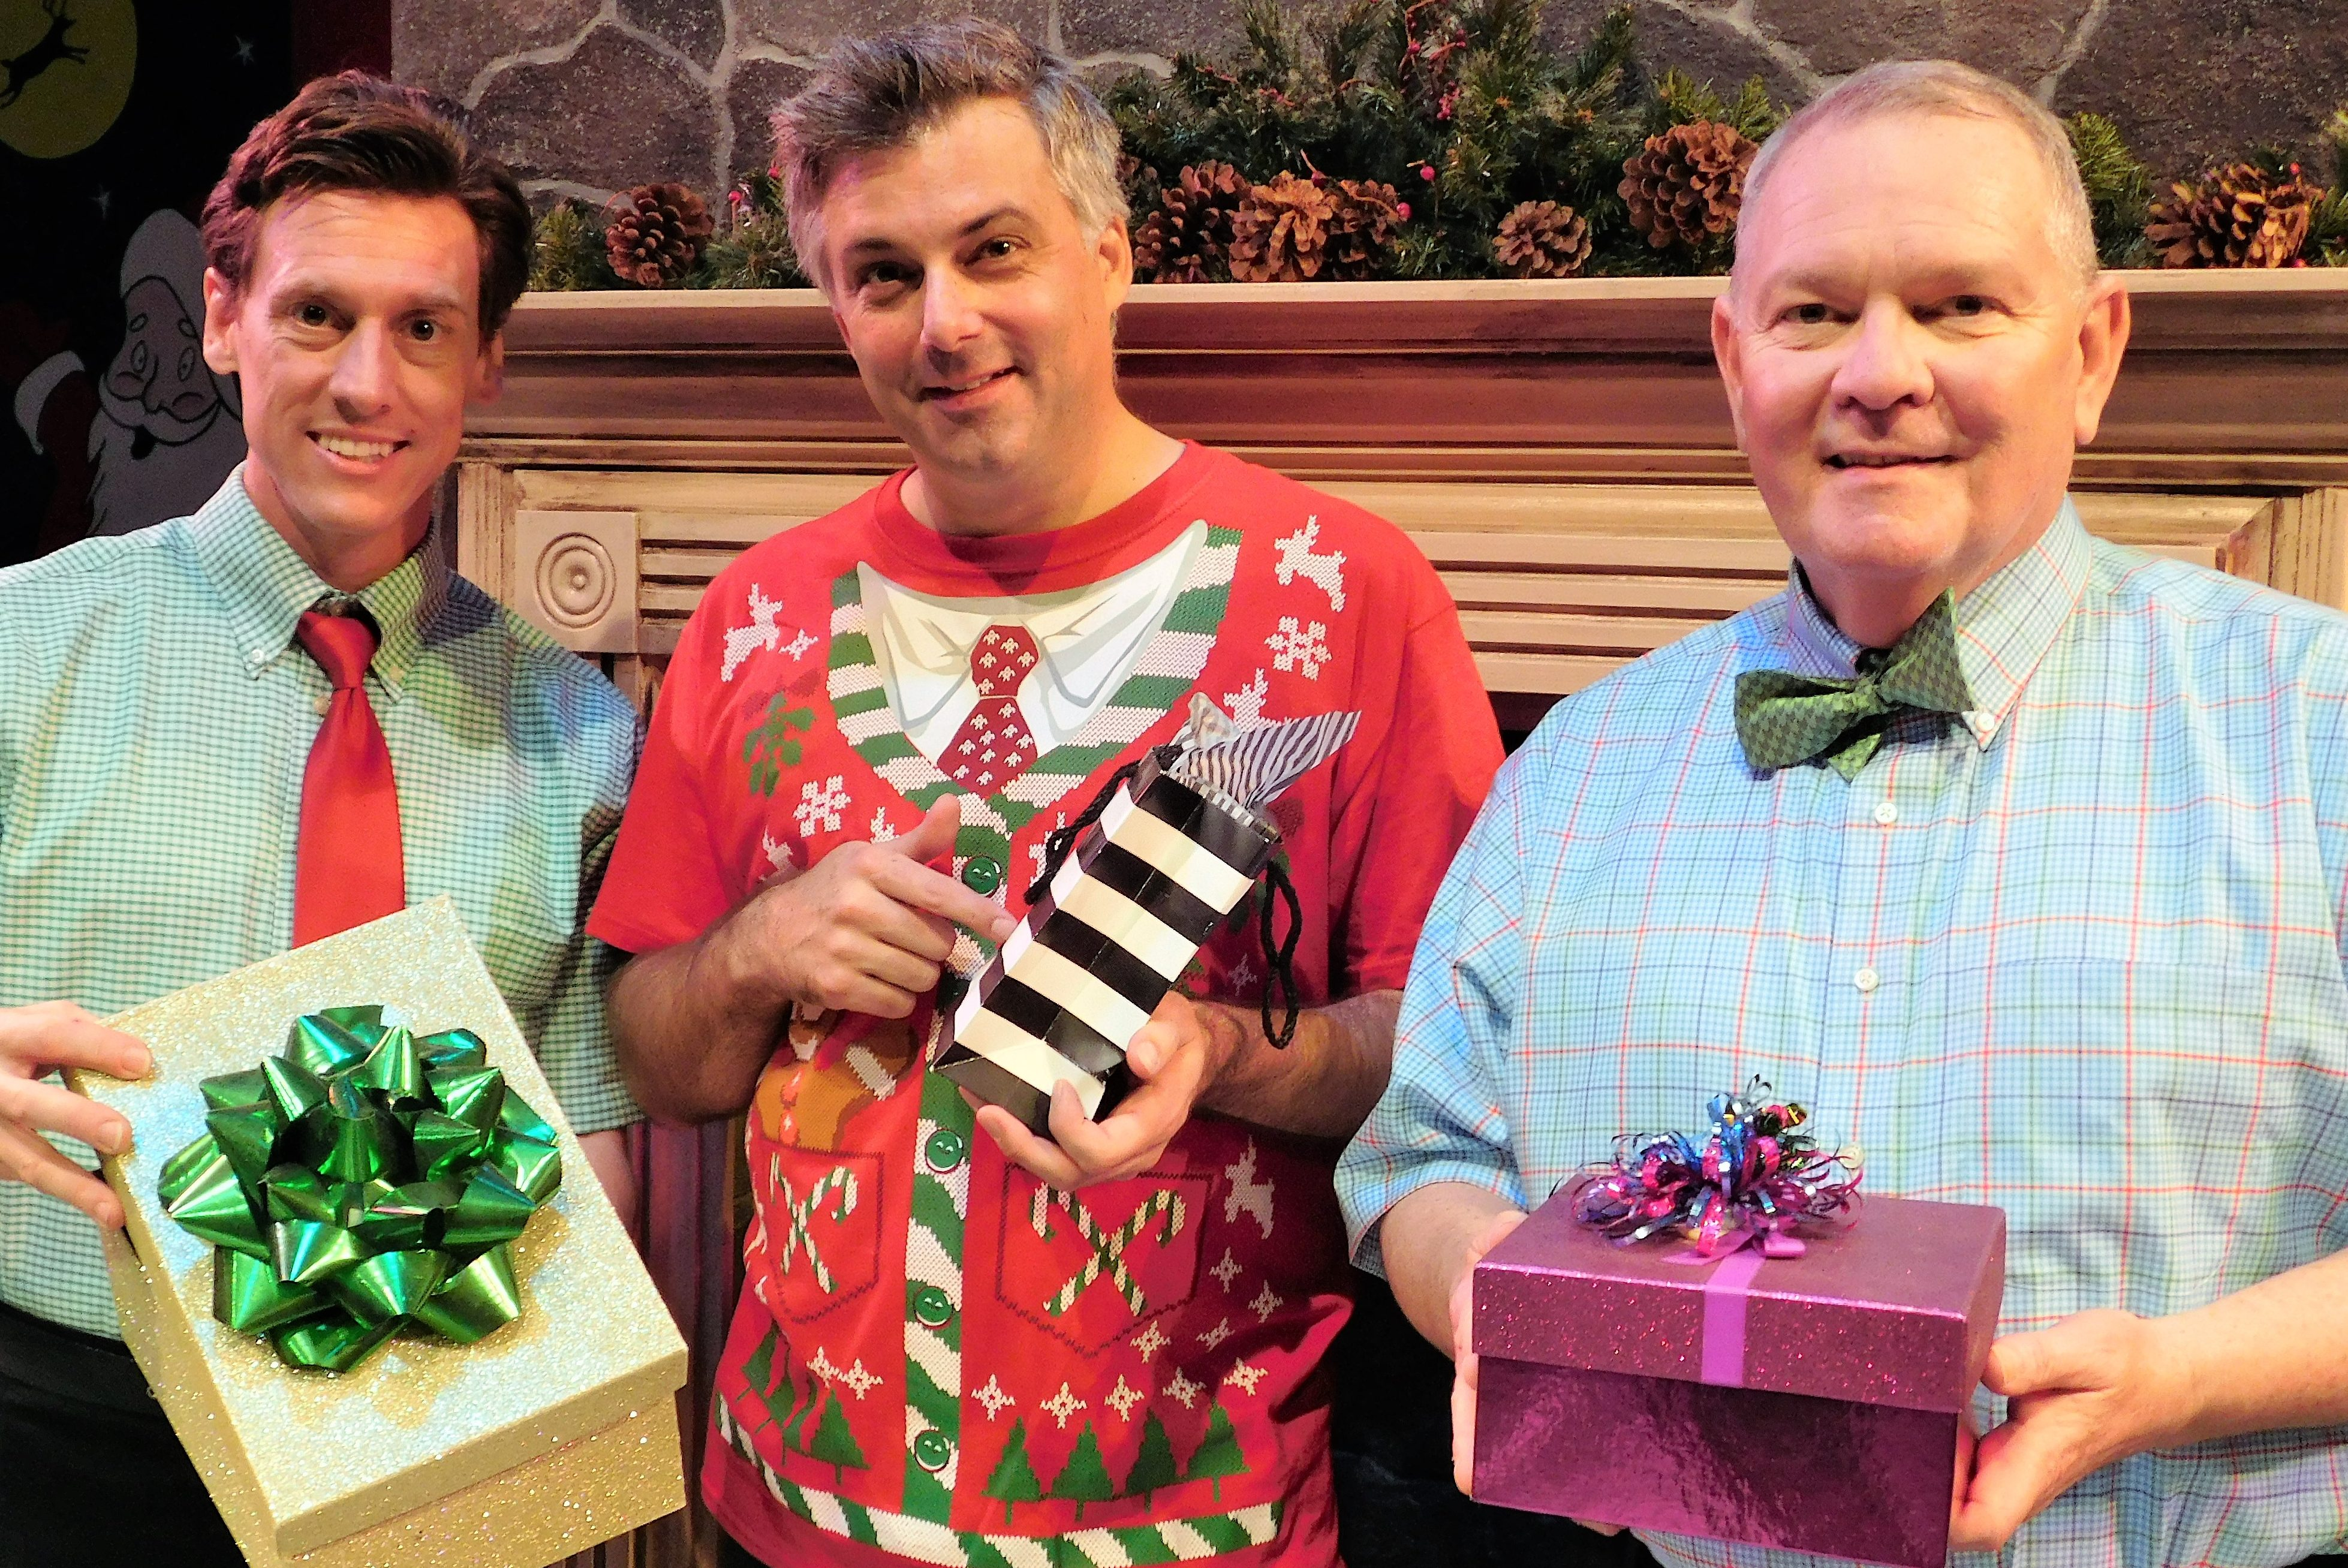 From left, David Patrick Ford, Matthew Lindsay and Mark Chambers offer tidings of good cheer during The Ultimate Christmas Show Abridged)